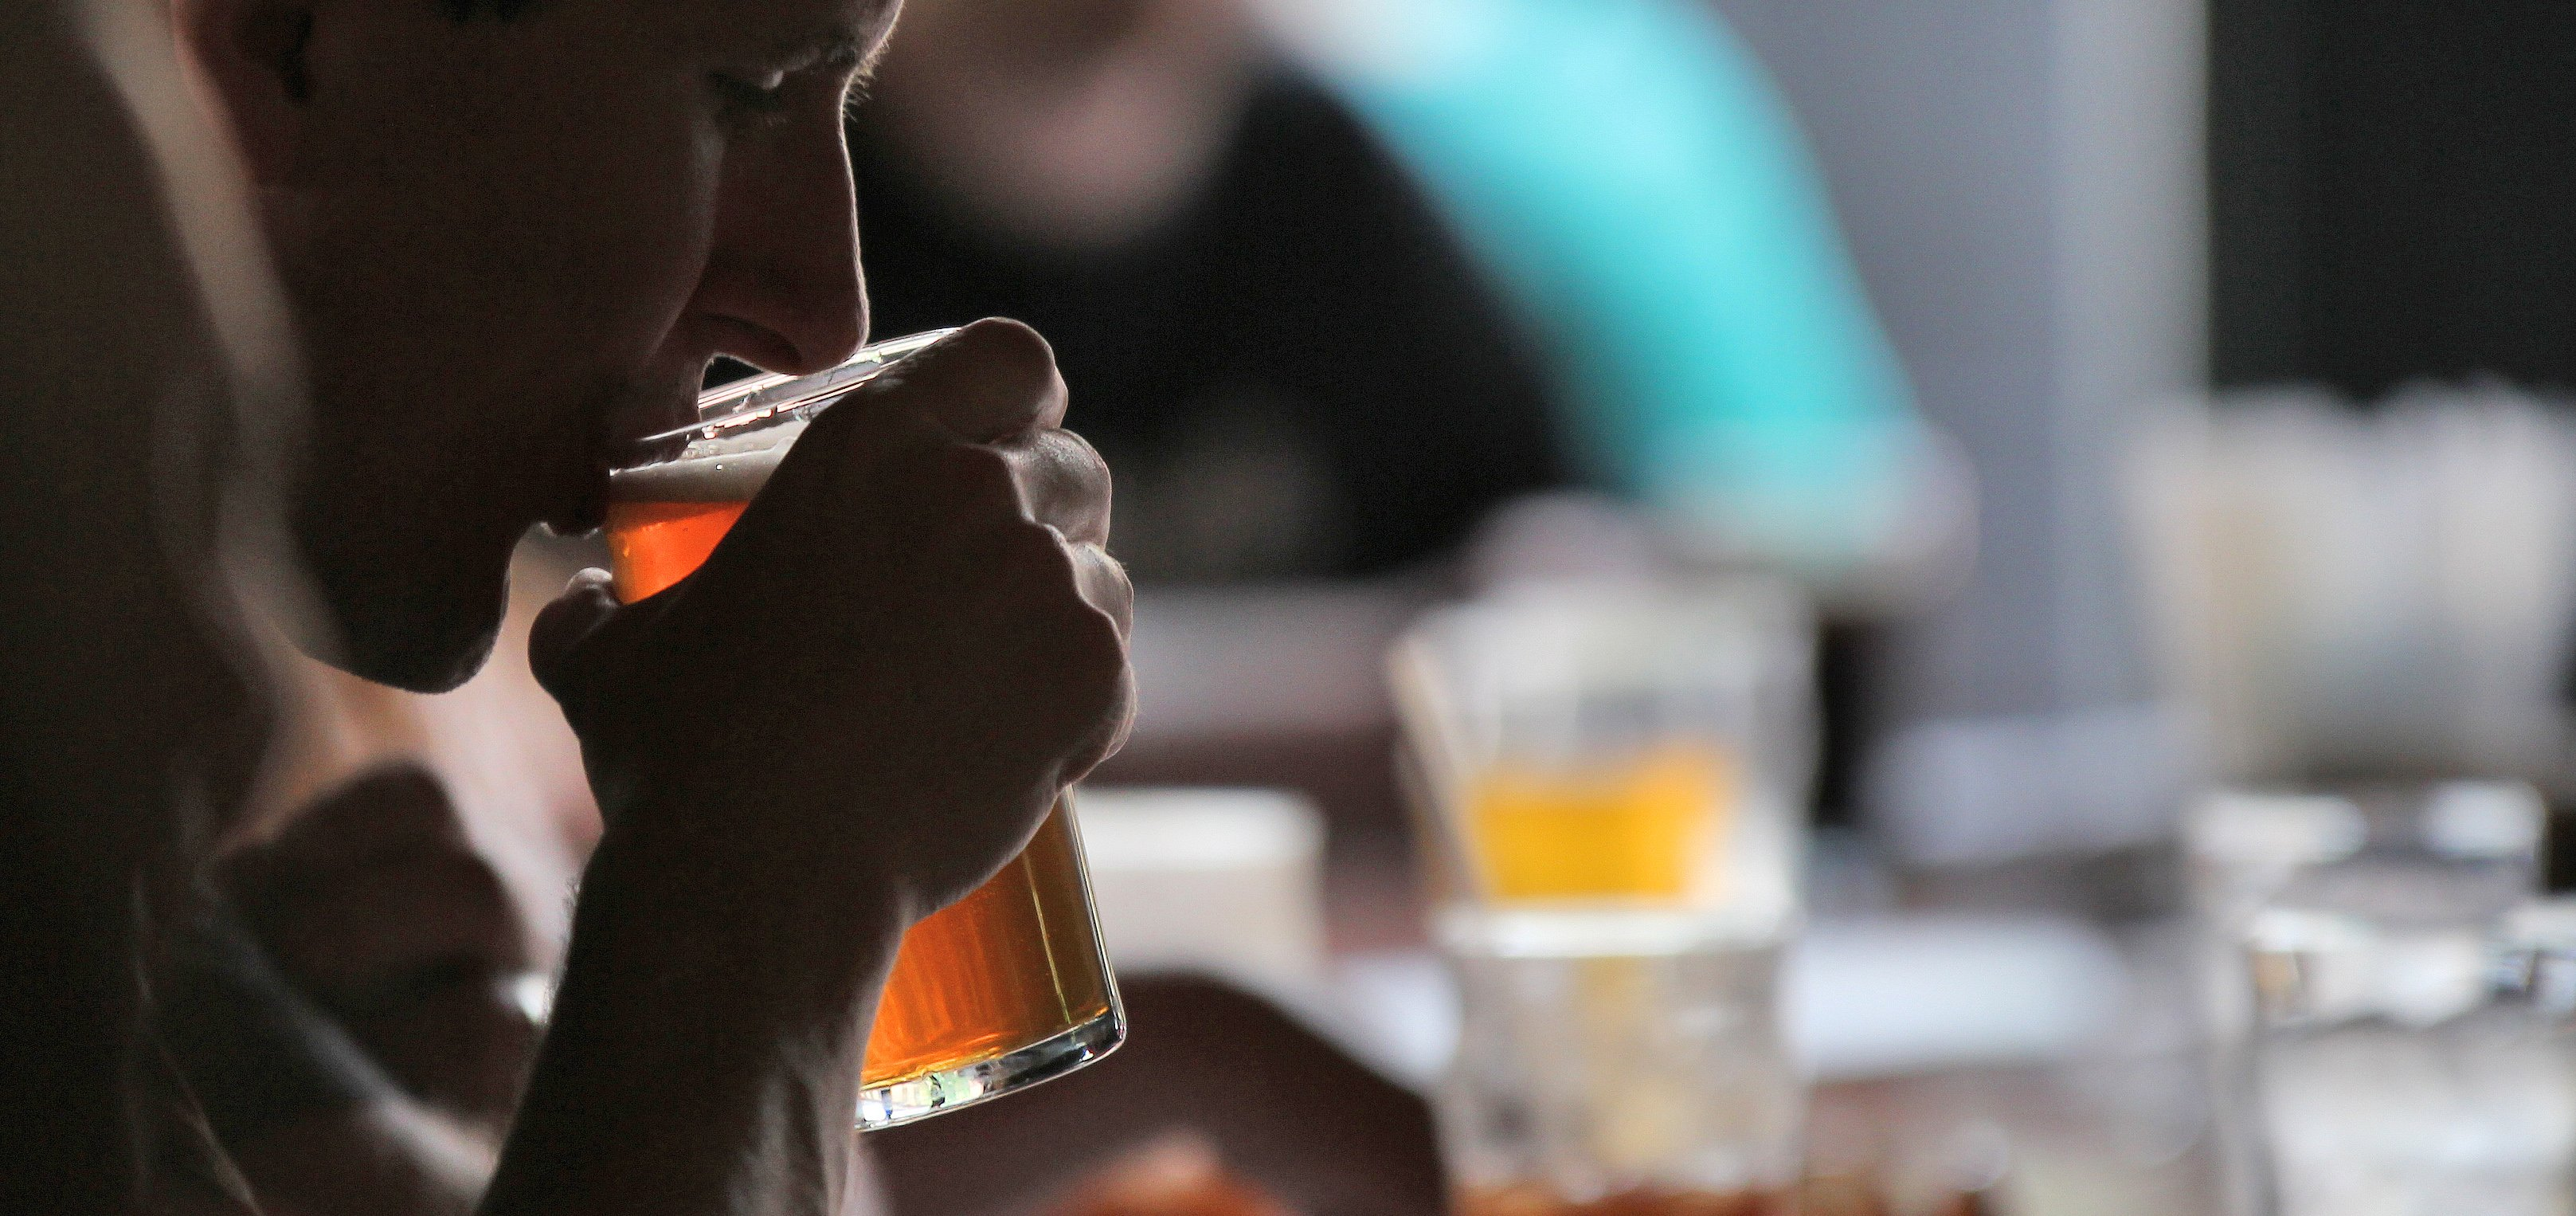 Man drinking a glass of beer in Colorado Springs